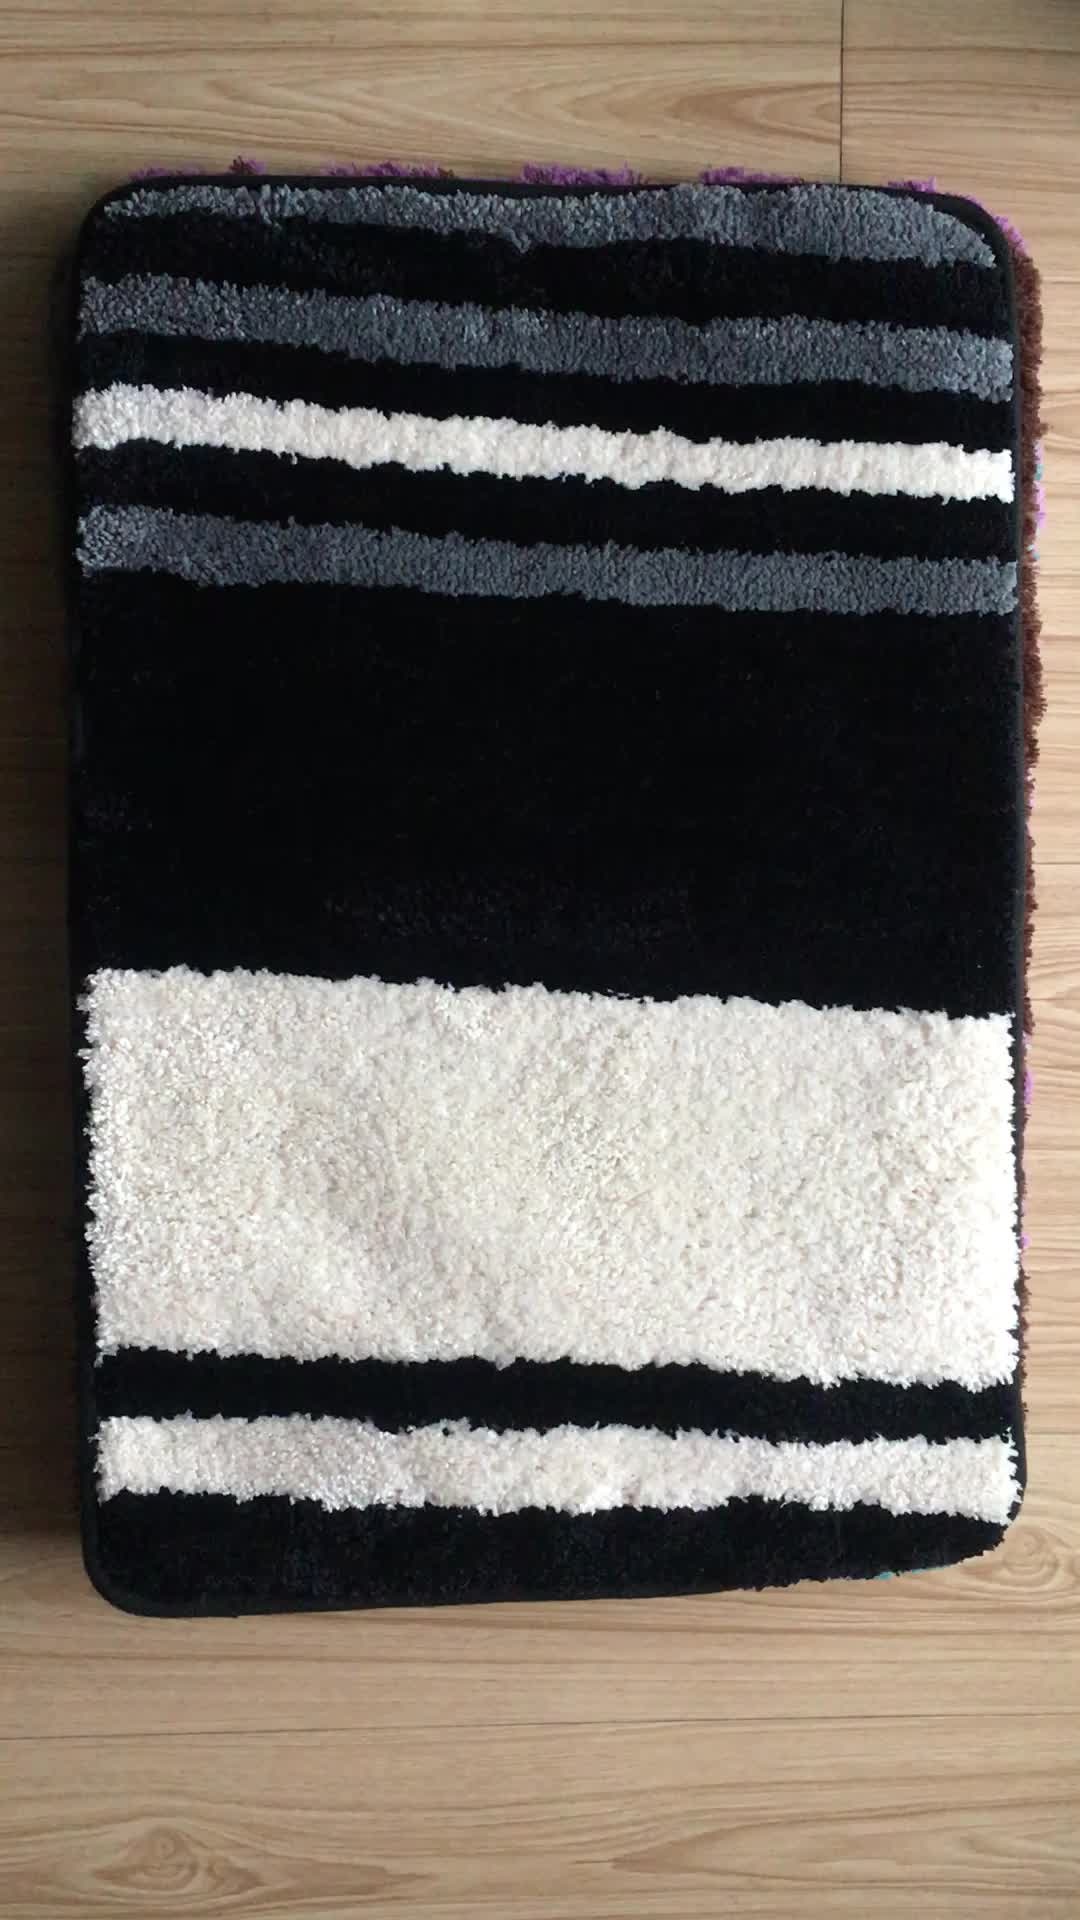 100% polyester washable bathroom carpet tile